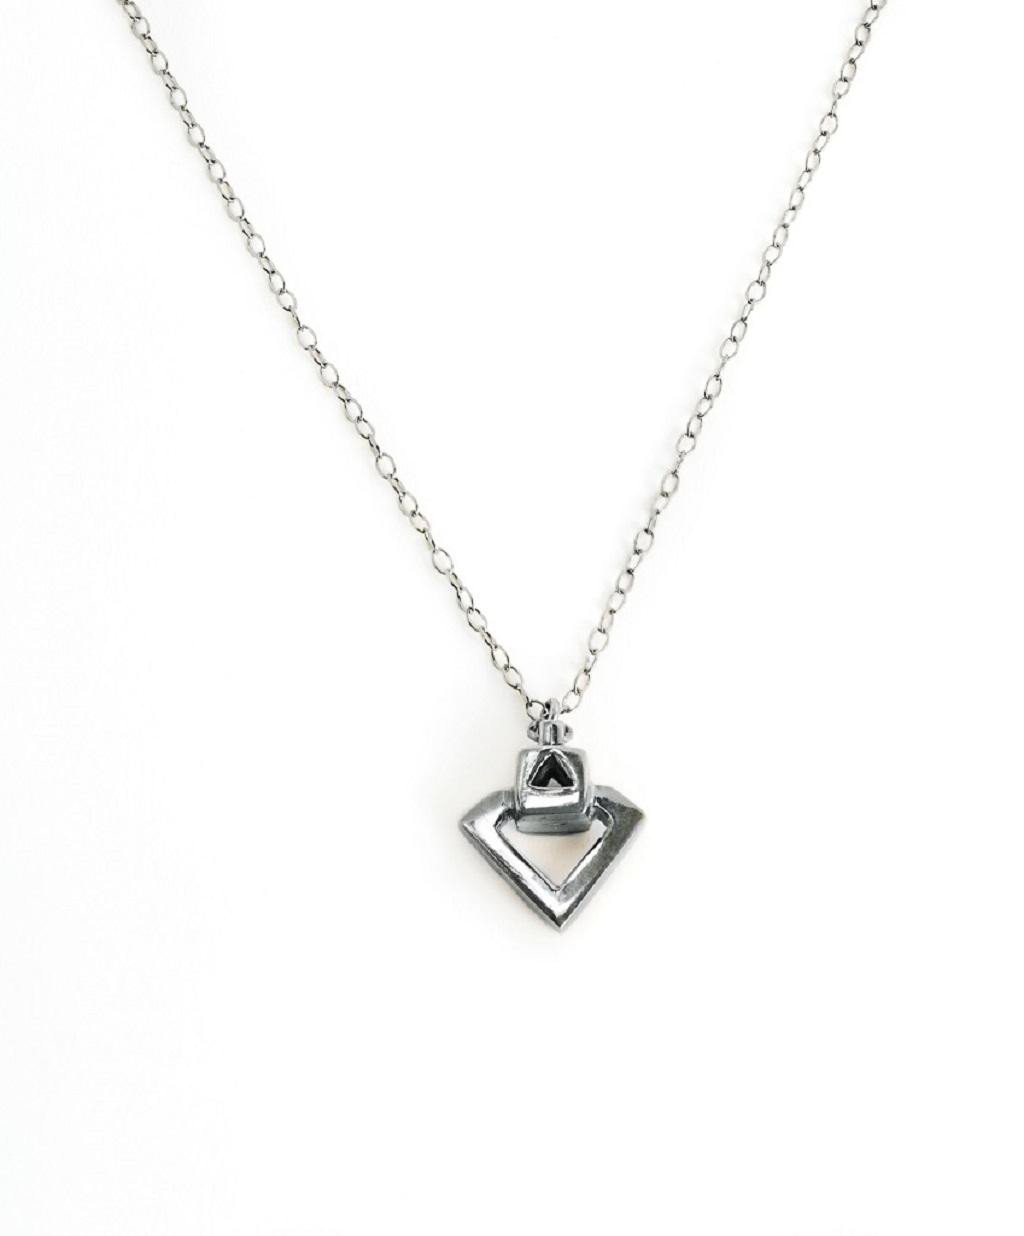 Diamond Eyes, Silver Pendant by Sally Lane Jewellery on curated-crowd.com